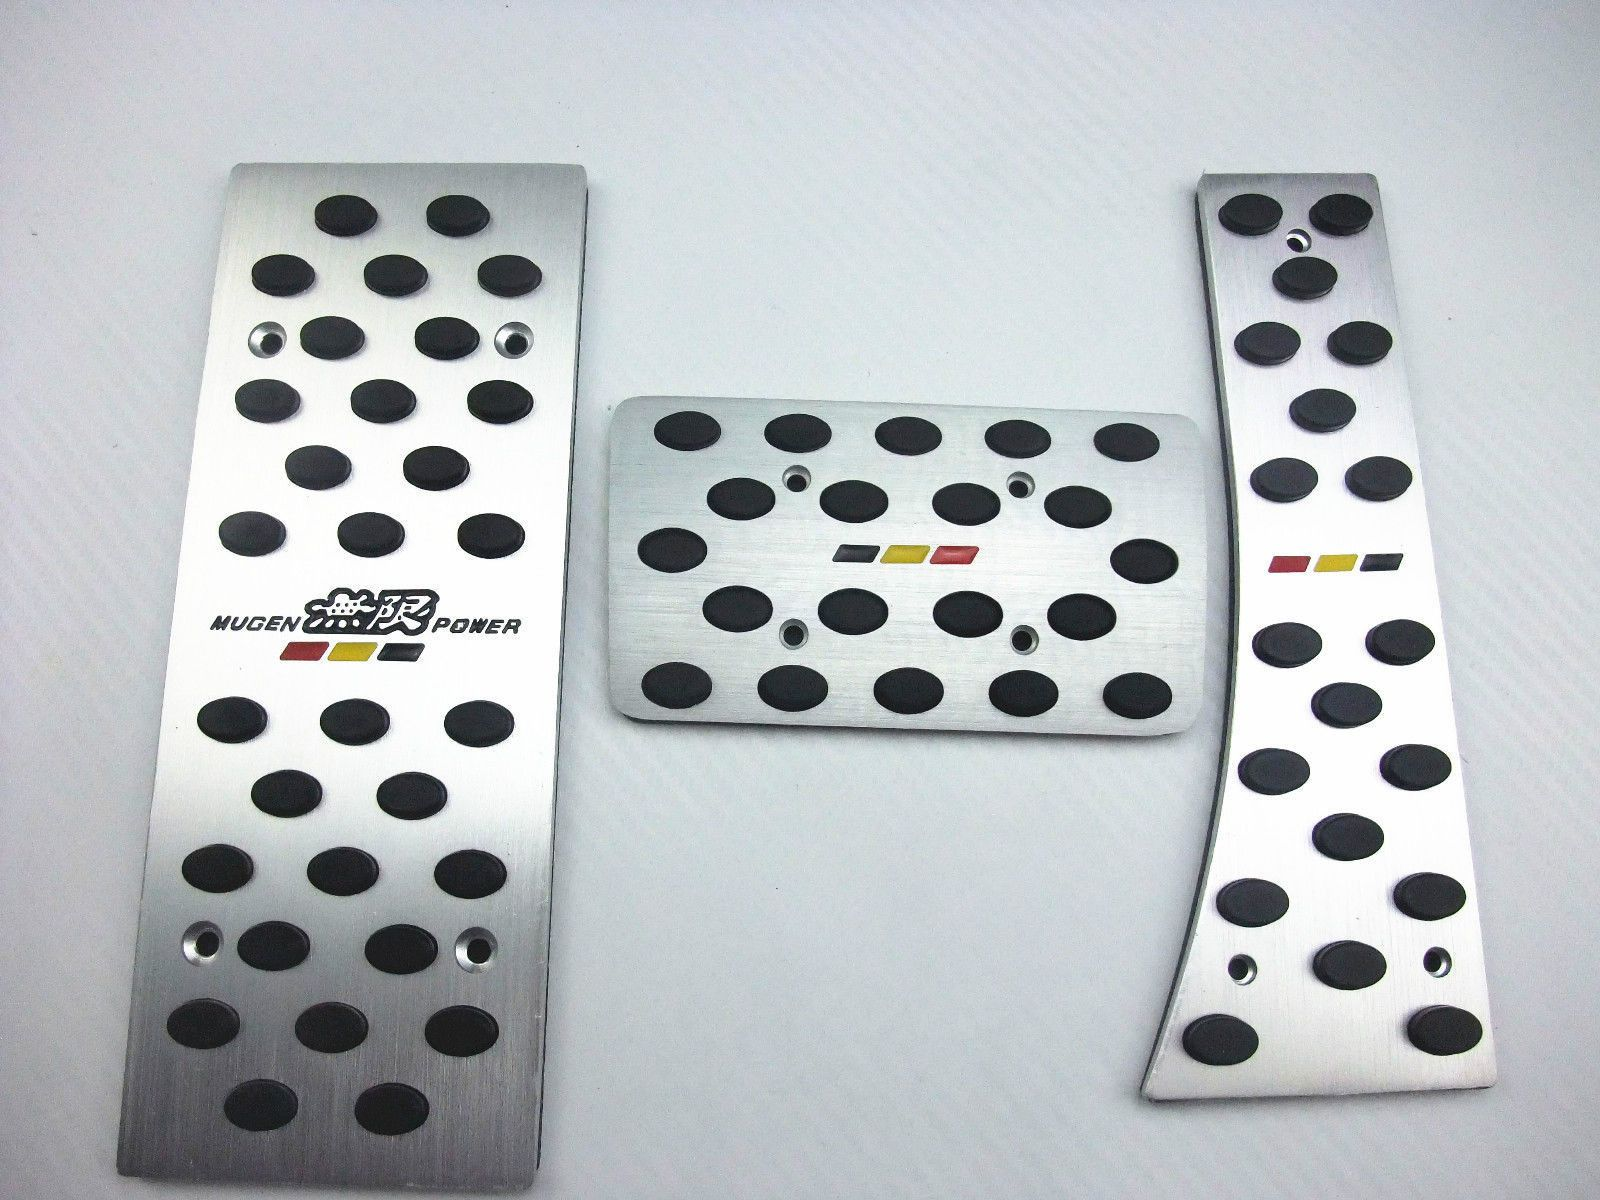 XYIVYG Car Styling AT Aluminum Mugen Foot Rest Pedals for Honda Civic 06-11 FD1 FD2 FG1 FG2 FA1 FA5